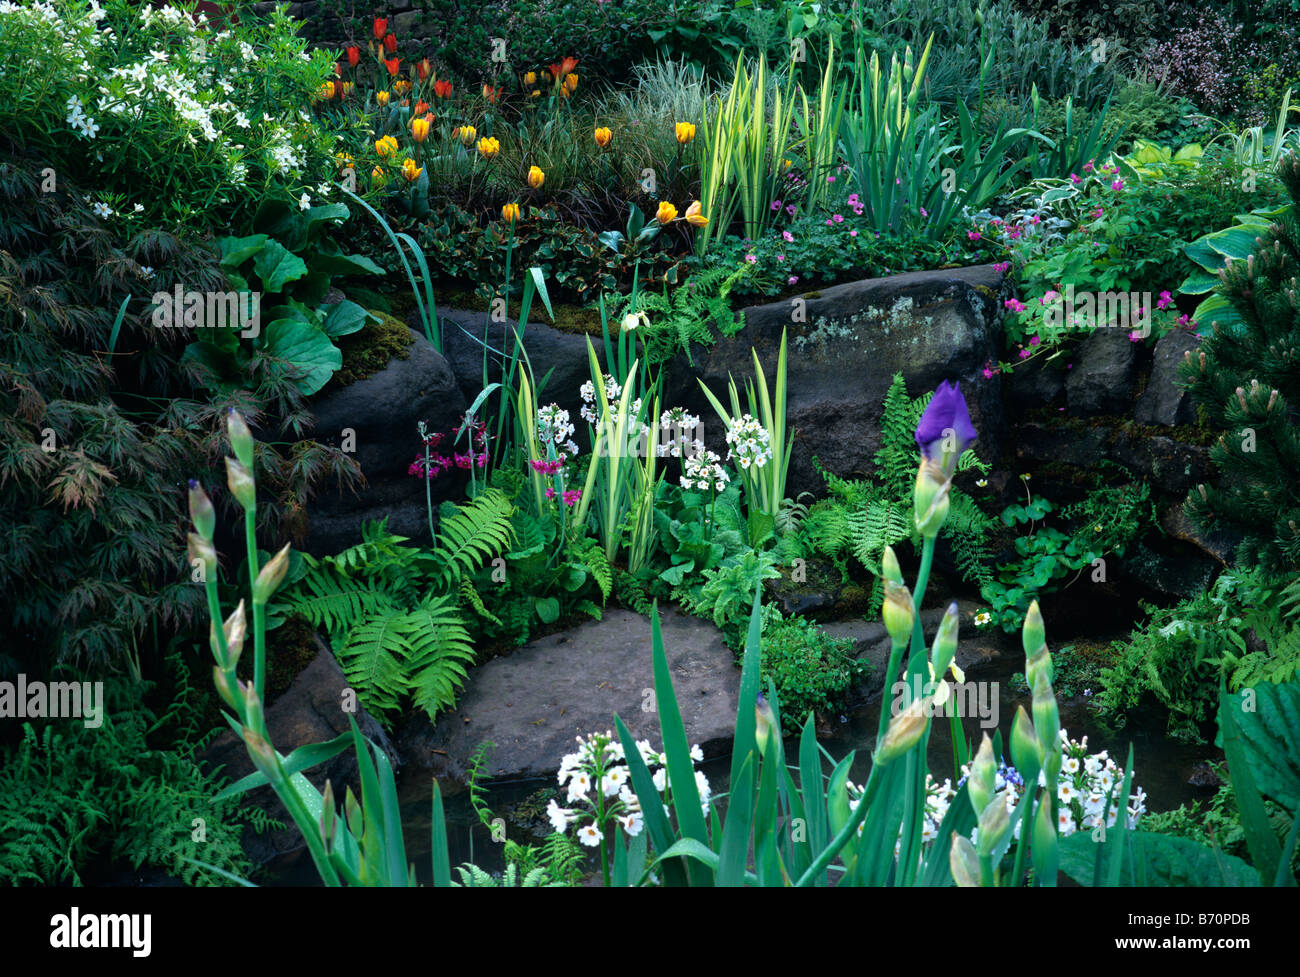 Spring rockery and water garden - Stock Image